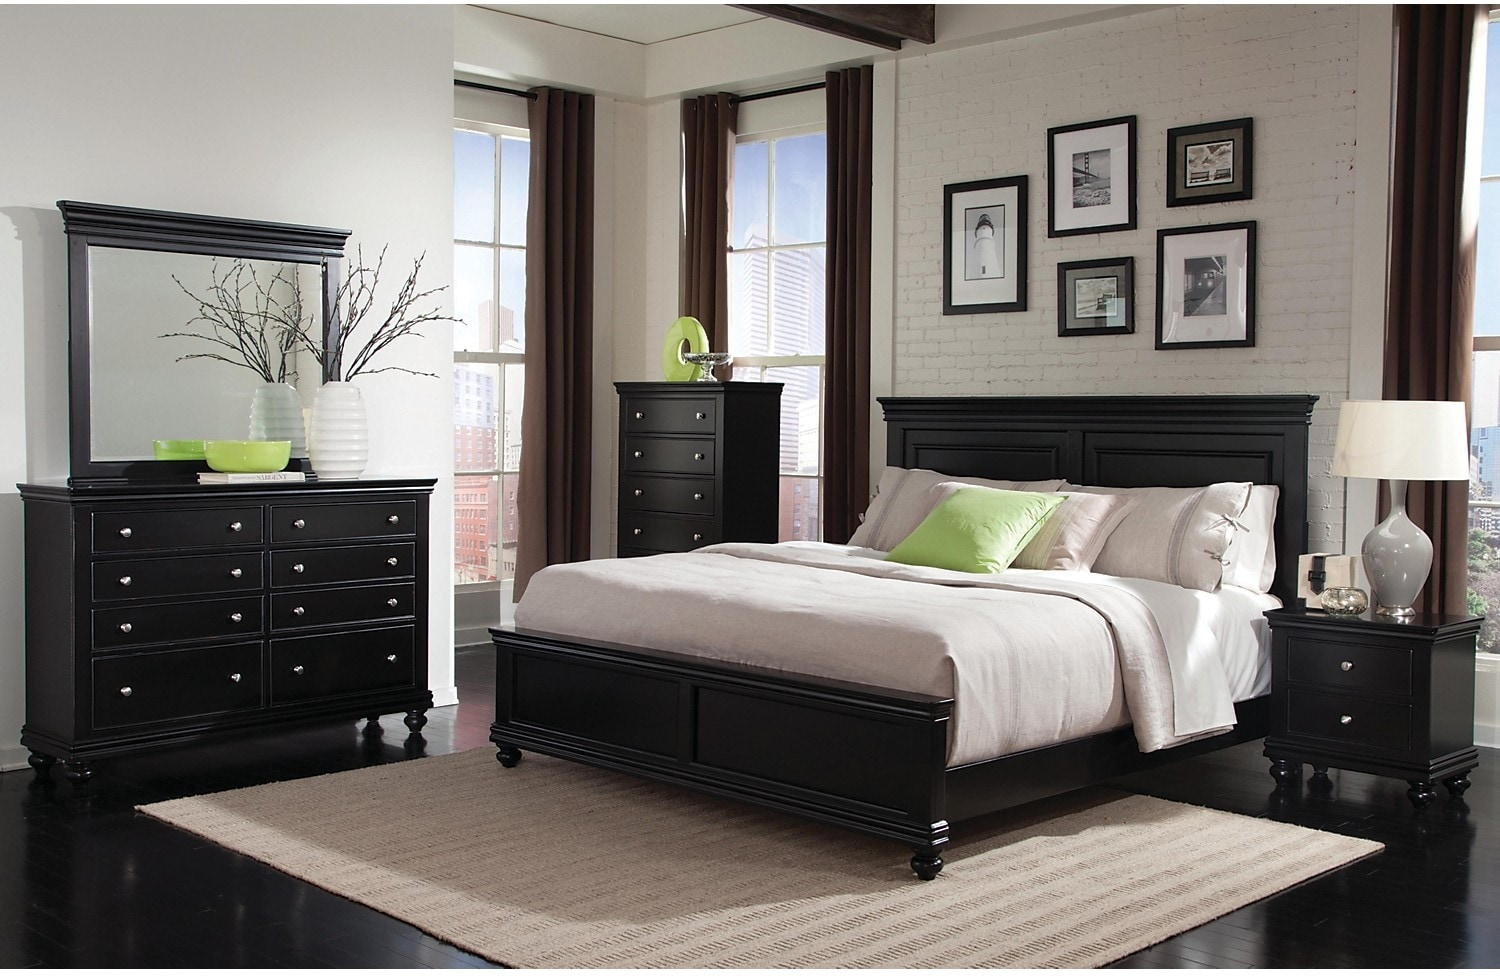 bridgeport 5 piece queen bedroom set black the brick 35 images of wardrobe designs for bedrooms